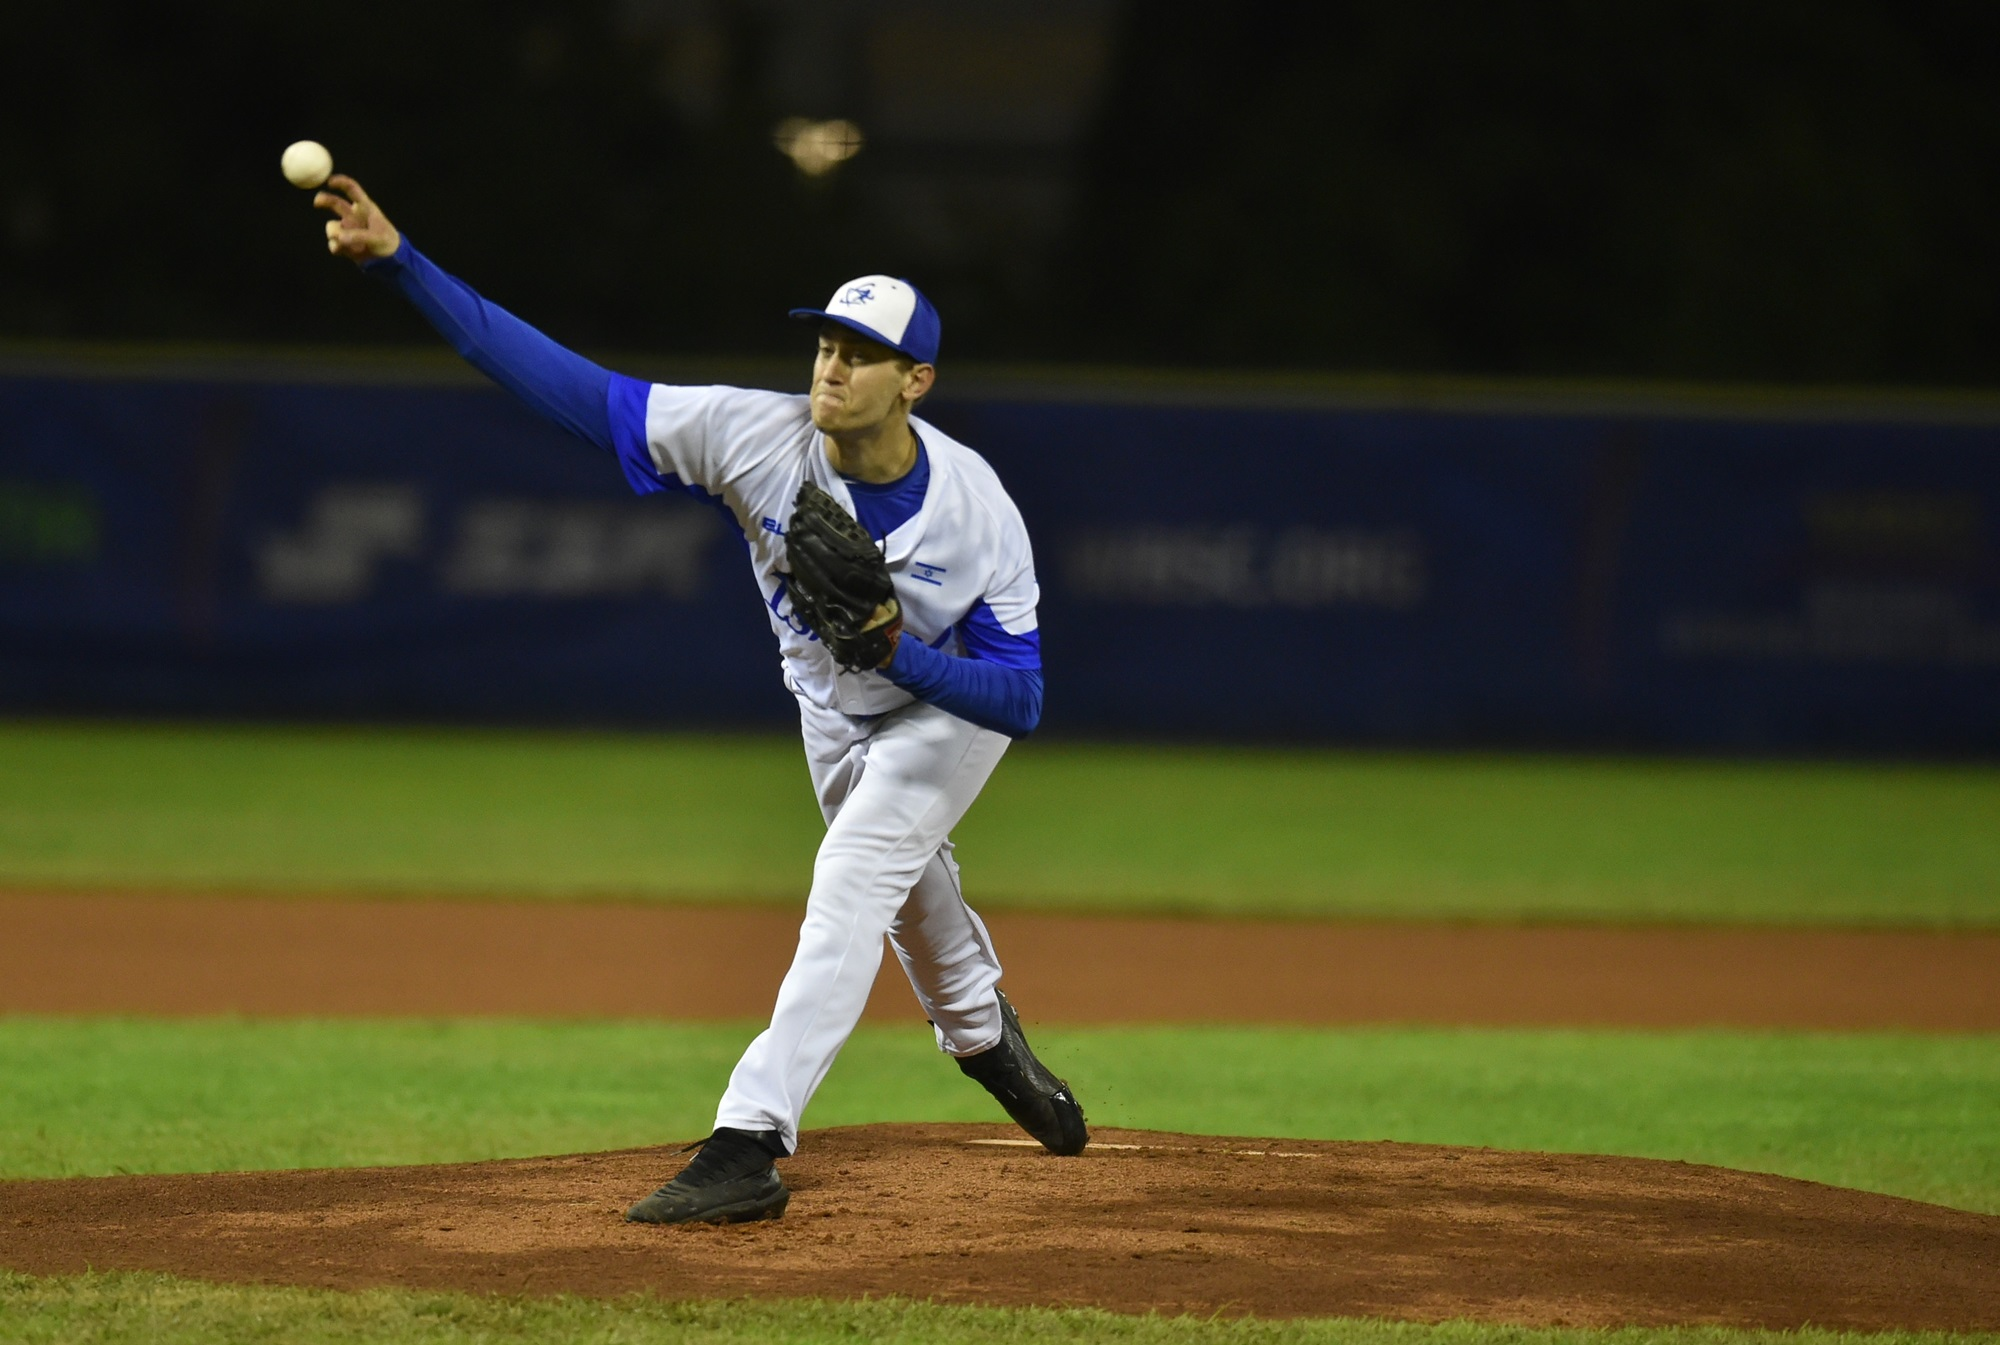 Former Major Leaguer Jon Moscot went four innings for Israel